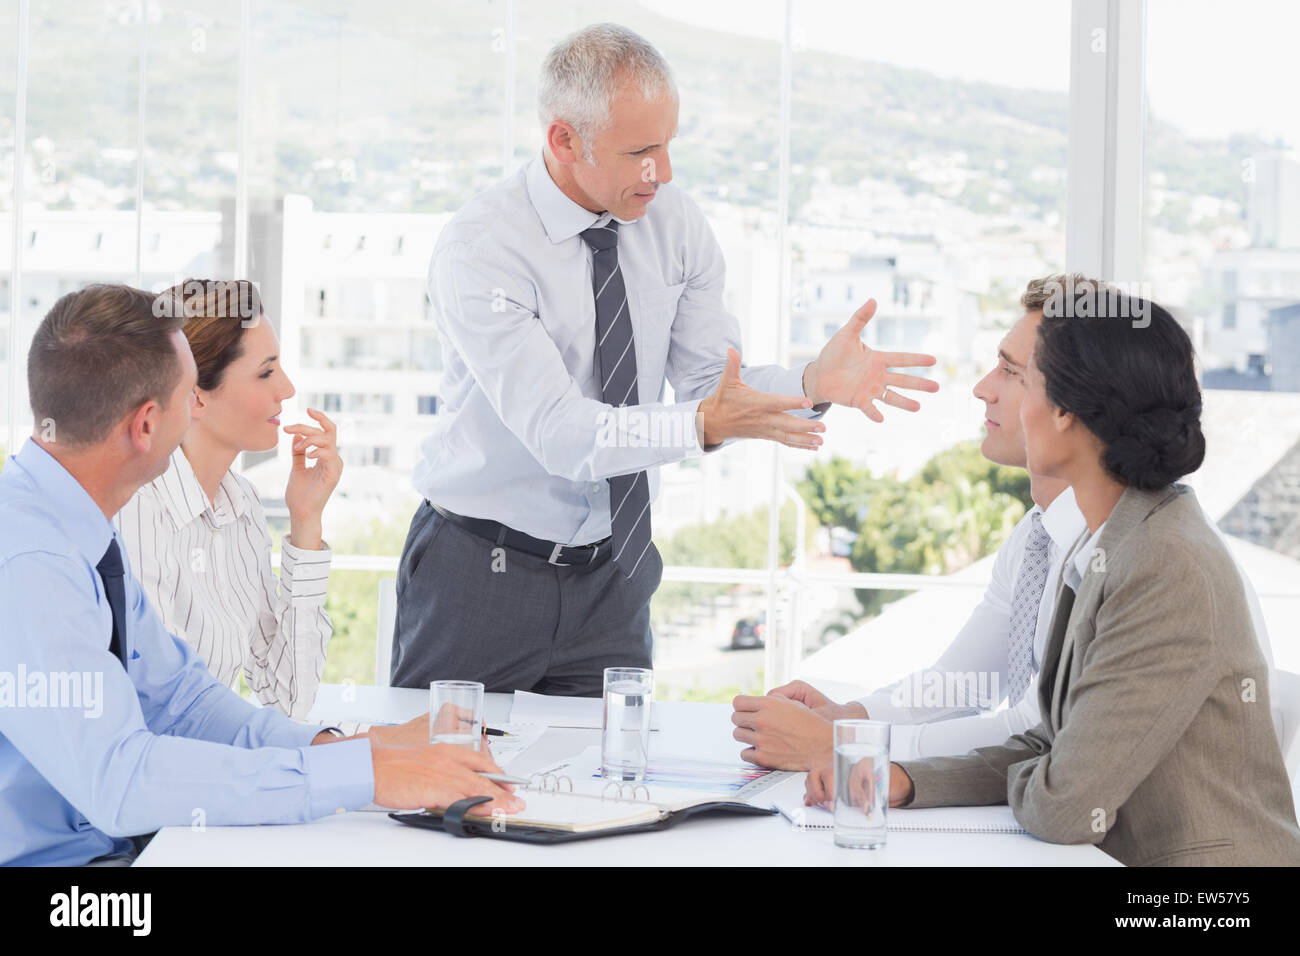 Businessman yelling at his team - Stock Image